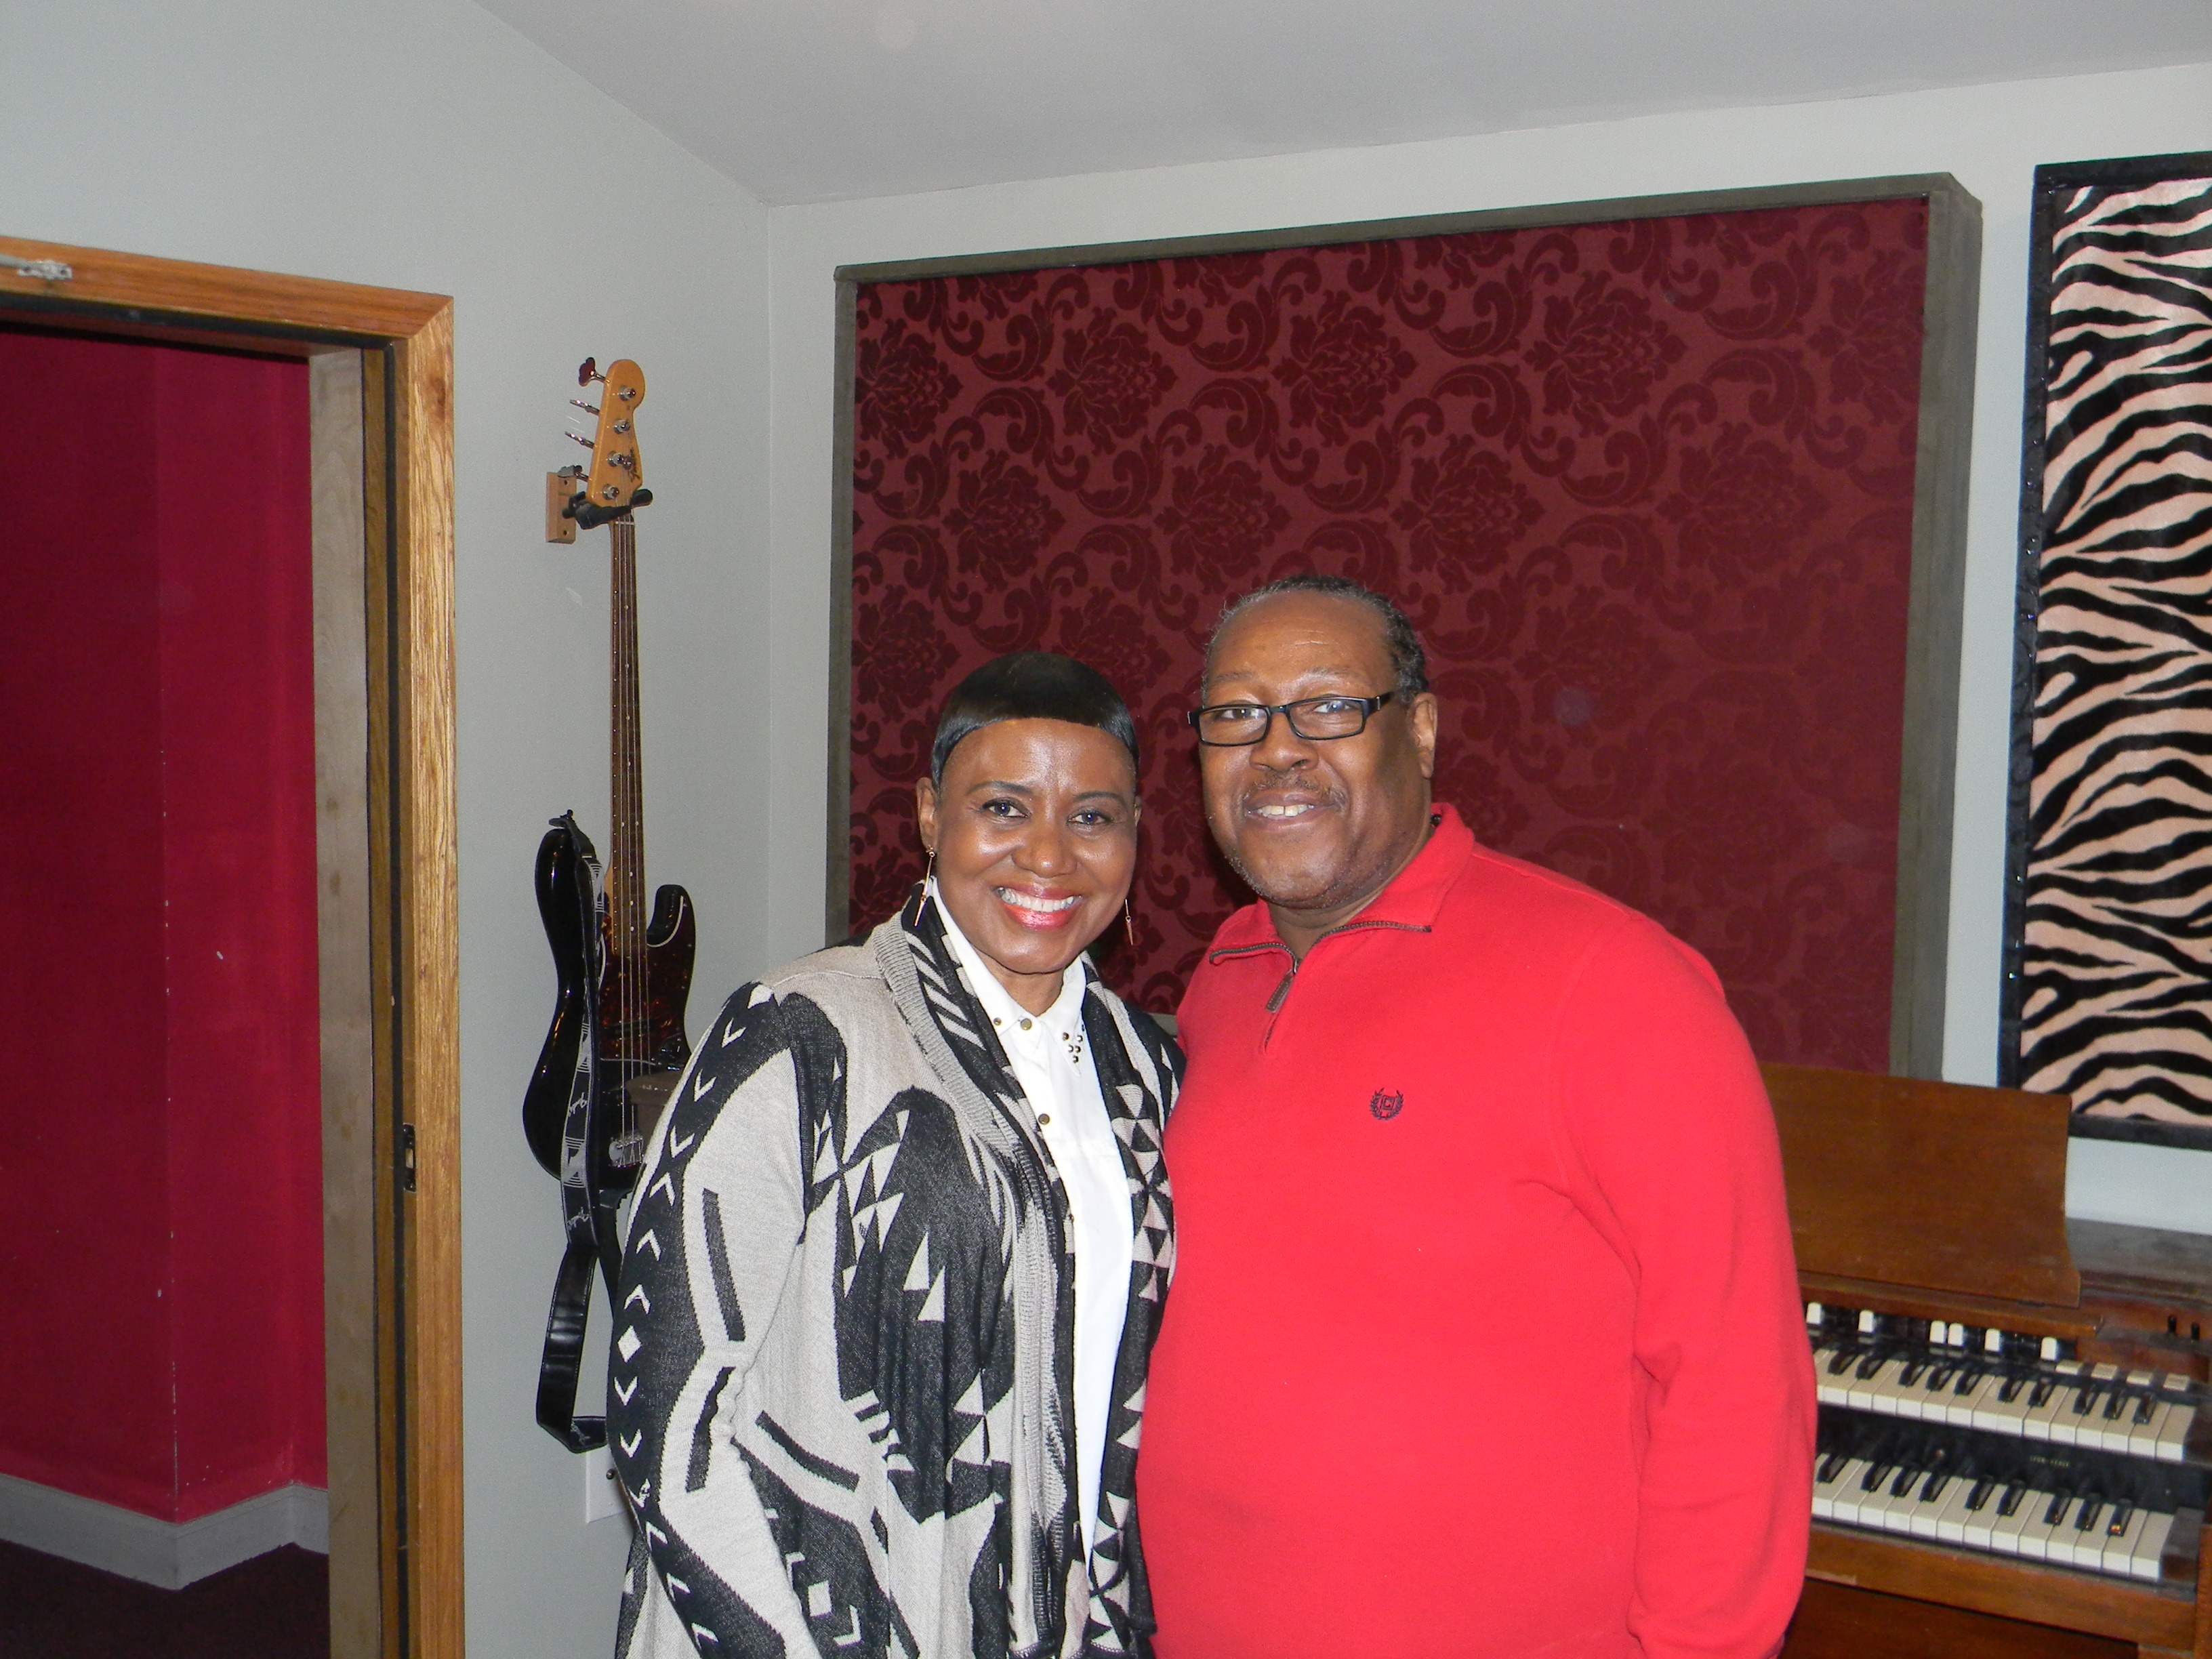 PJ WILLIS WITH ROSE REED (JIMMY REED'S DAUGHTER)